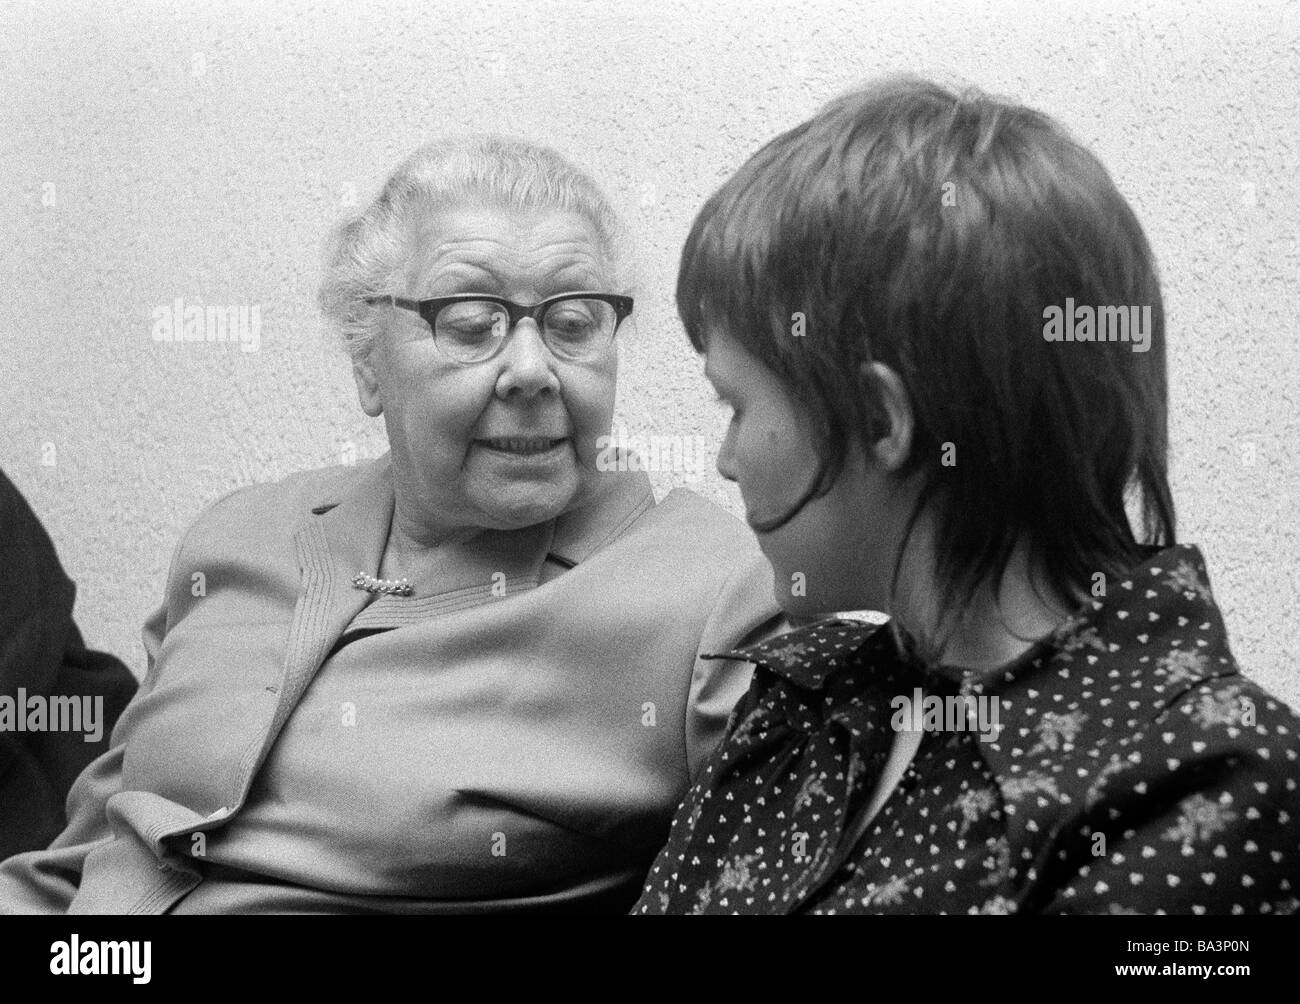 Seventies, black and white photo, people, older woman and young woman talking, aged 70 to 80 years, aged 20 to 25 - Stock Image